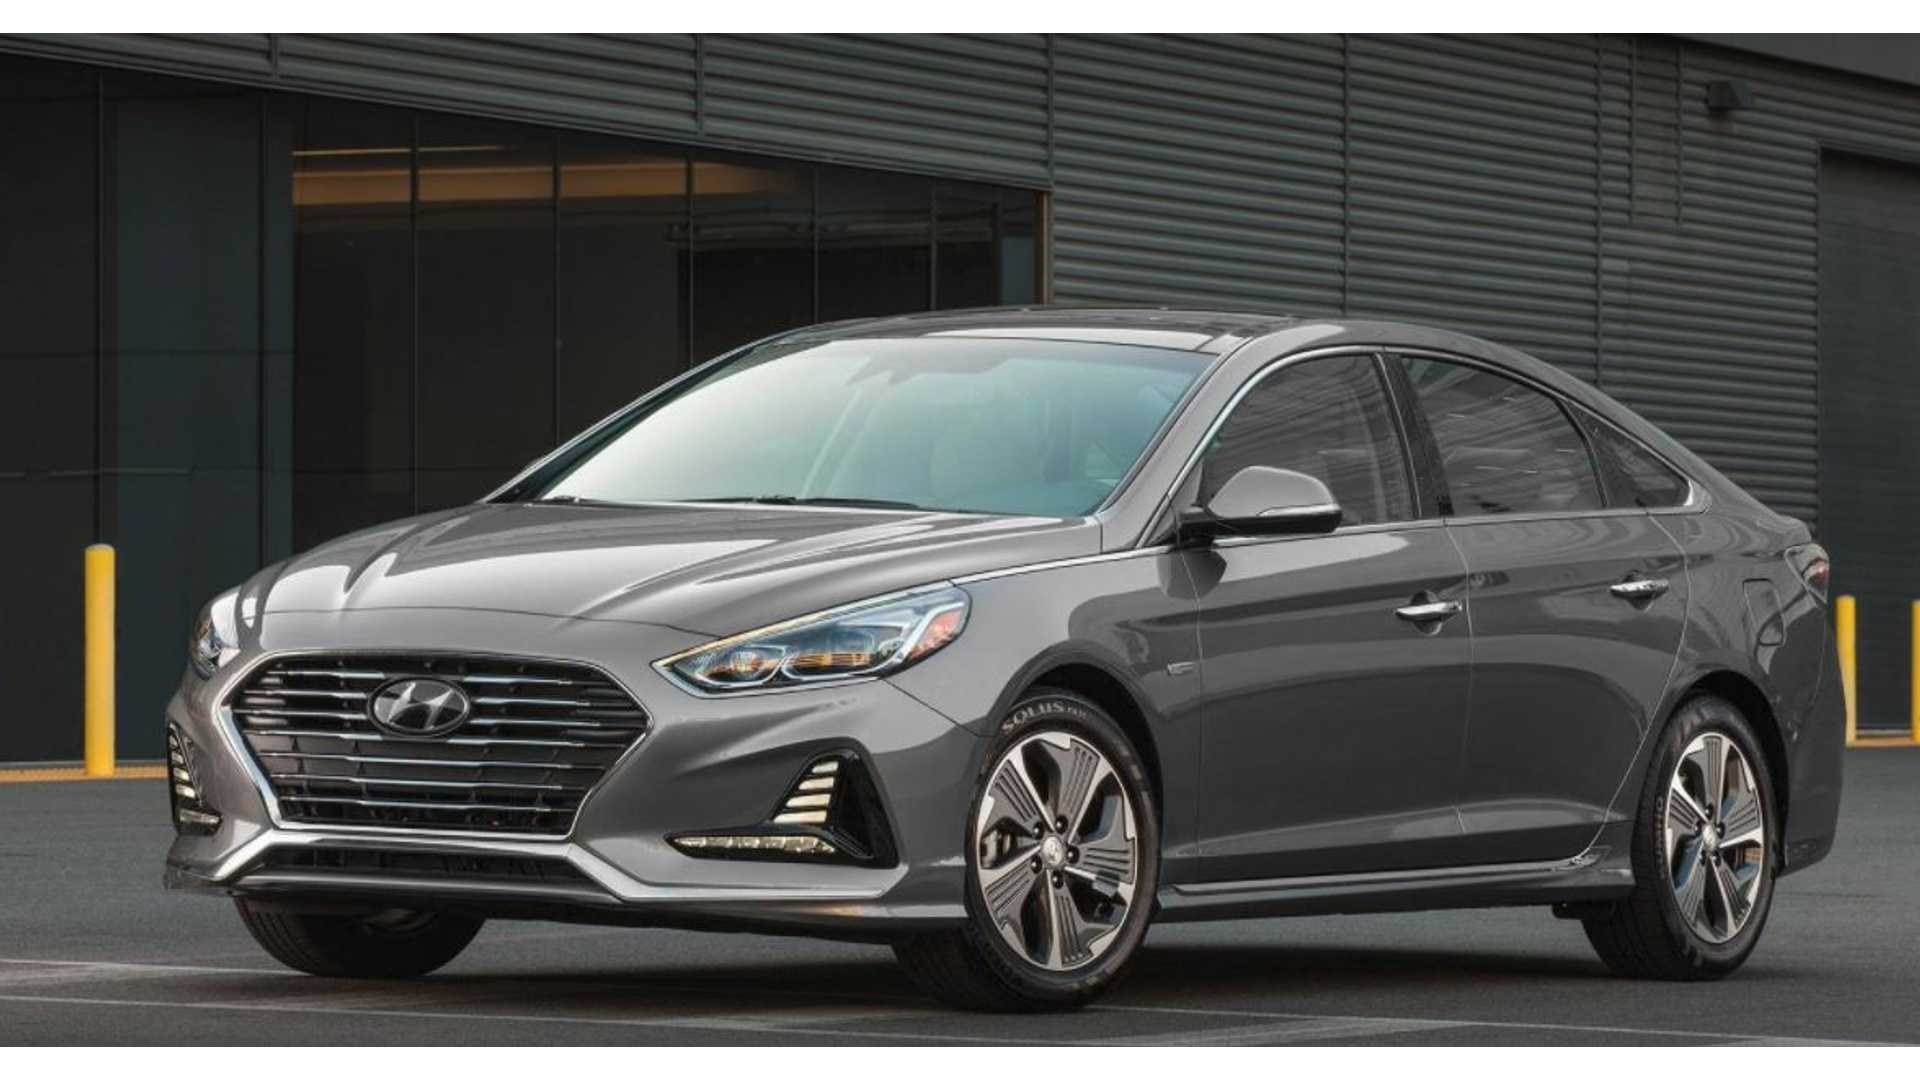 Hyundai Reveals Details On New 2018 Sonata Plug In Hybrid Electric Range Remains 27 Miles